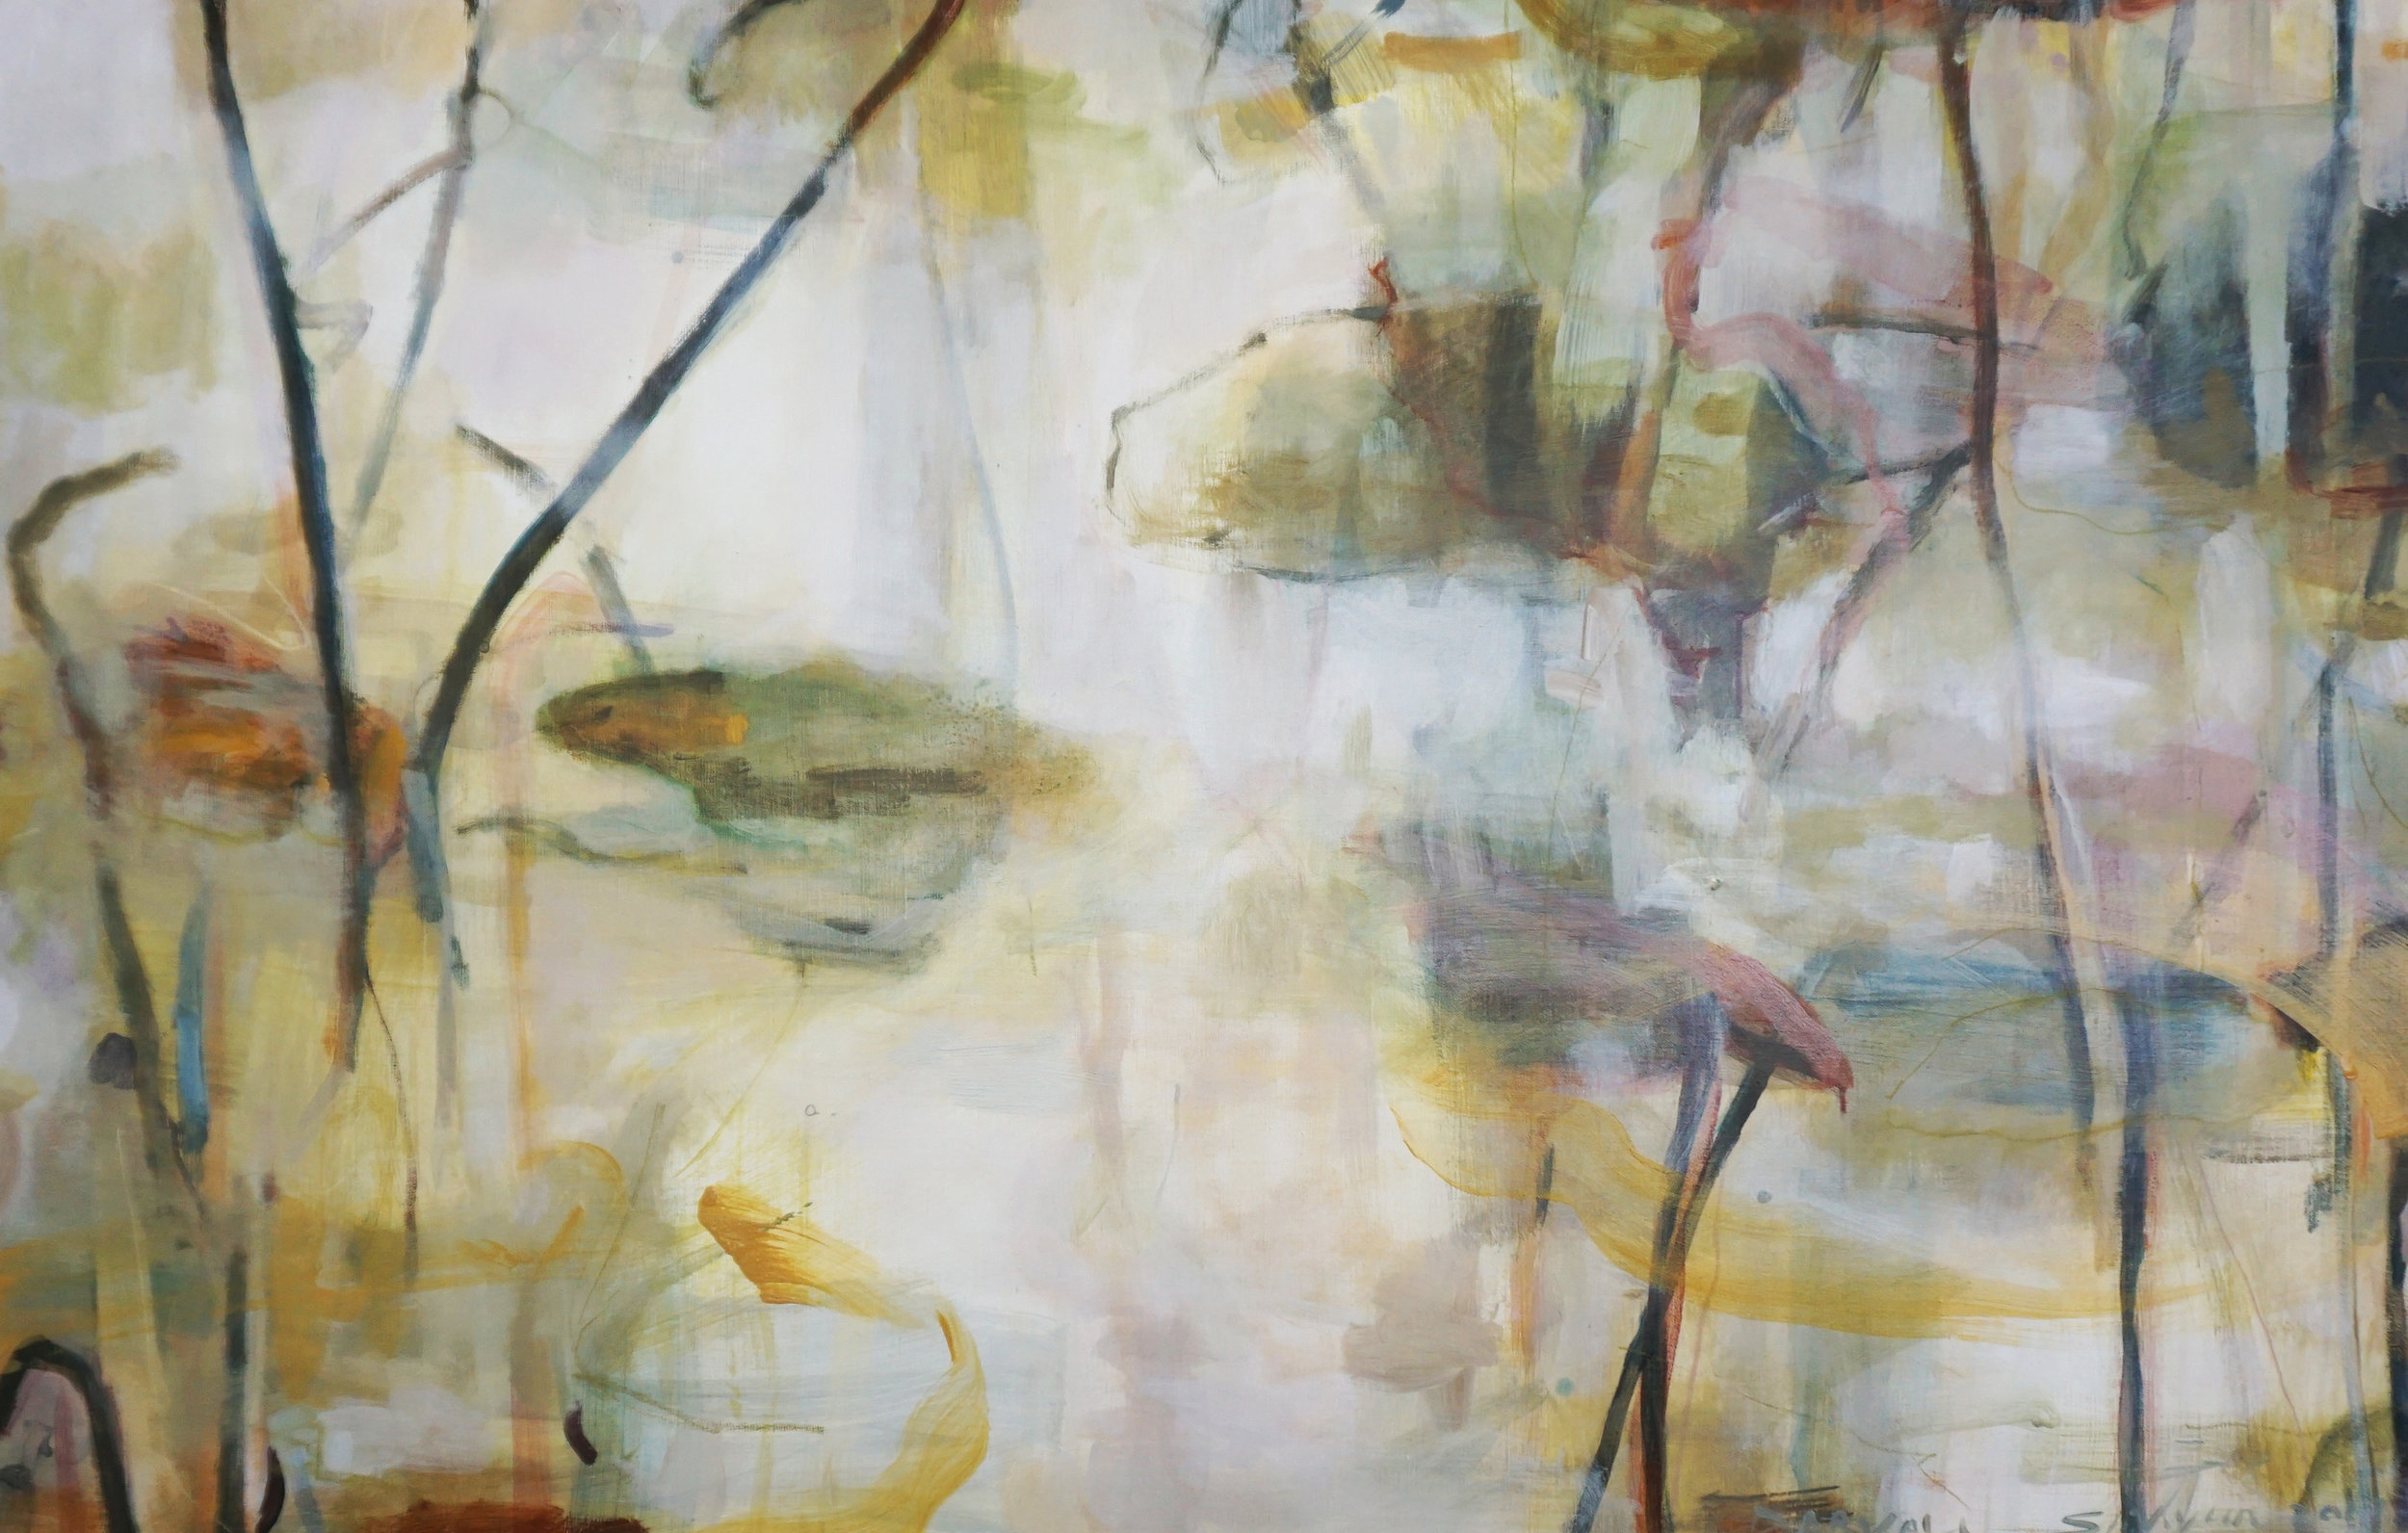 Lotus #2 2017  pigment and acrylic on Linen  98cm x 154cm  Private collection